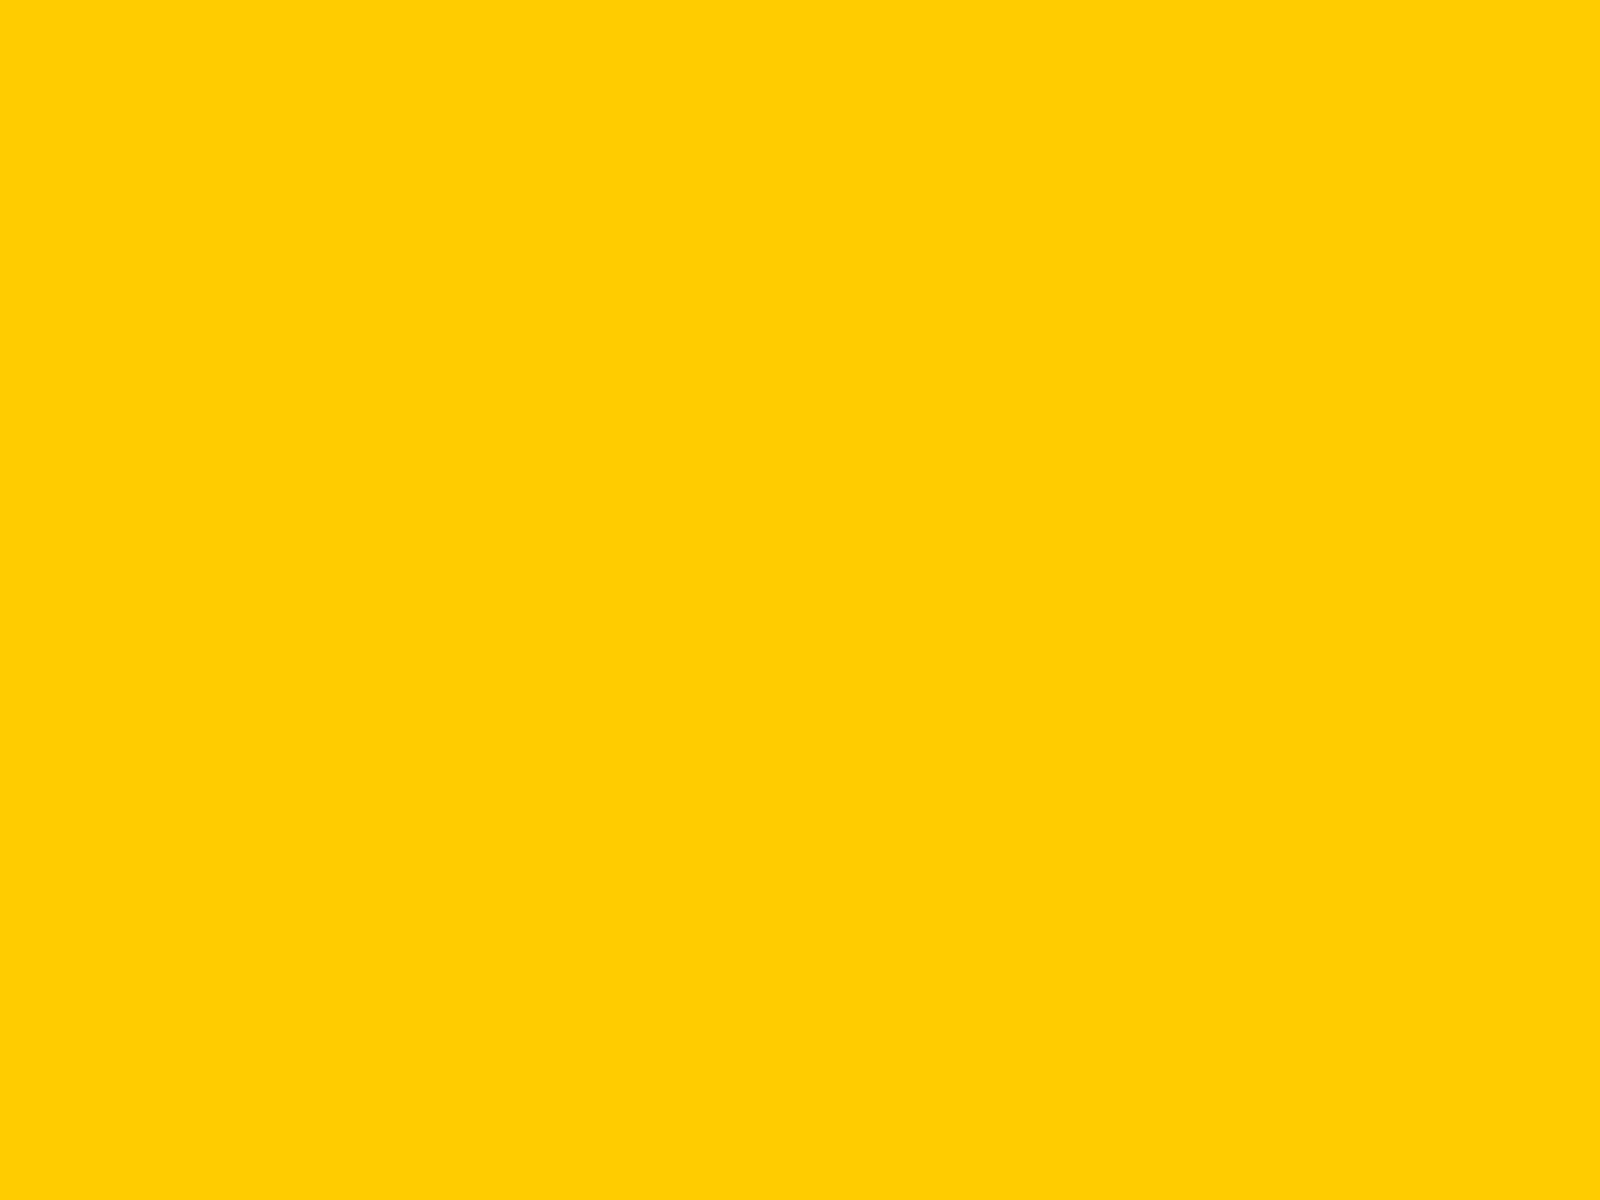 1600x1200 Tangerine Yellow Solid Color Background